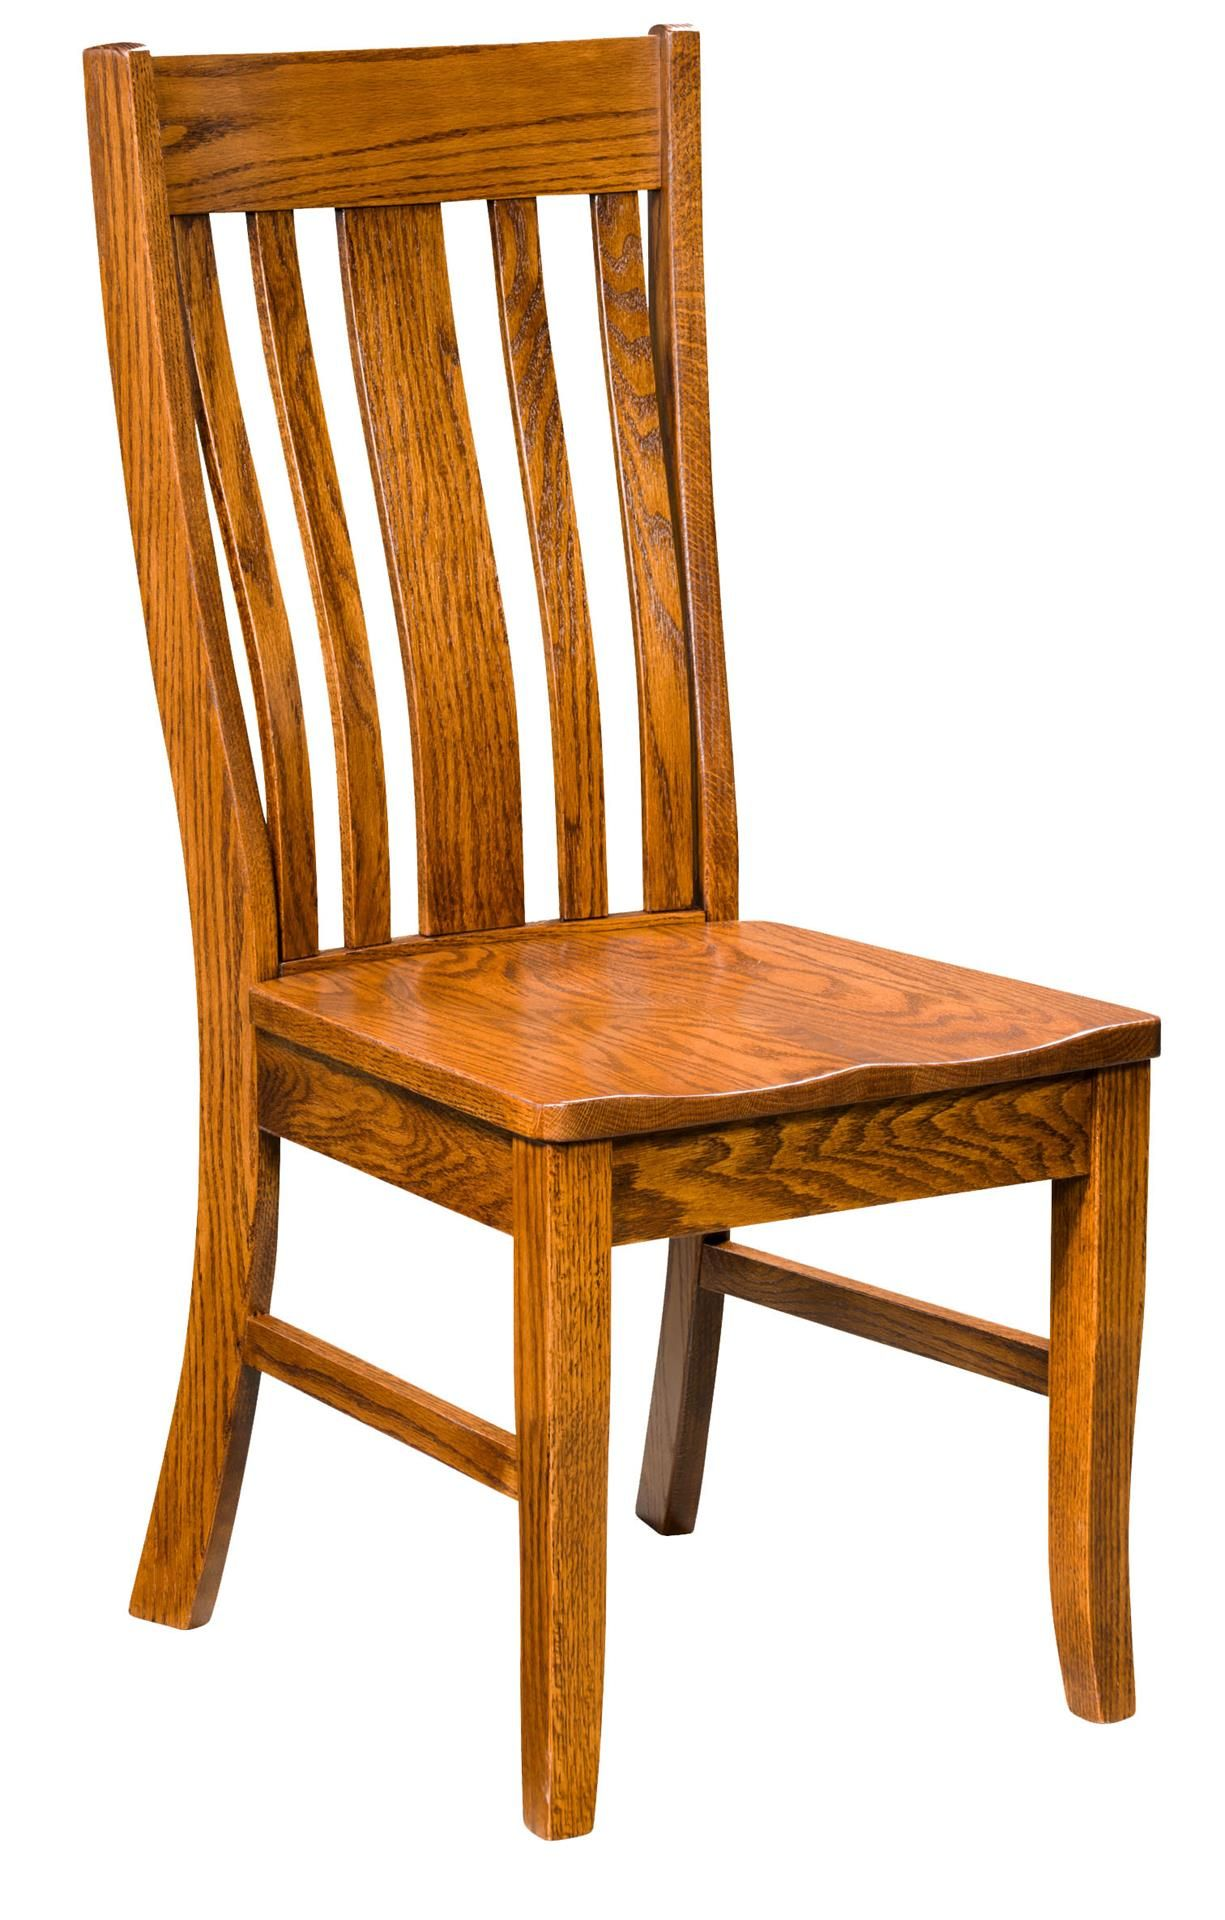 Amish Nostalgia Dining Chair Relax During Dinner In The Comfort Of This Mission Style Dining Chair Dining Chairs Chair Solid Wood Dining Room Chairs